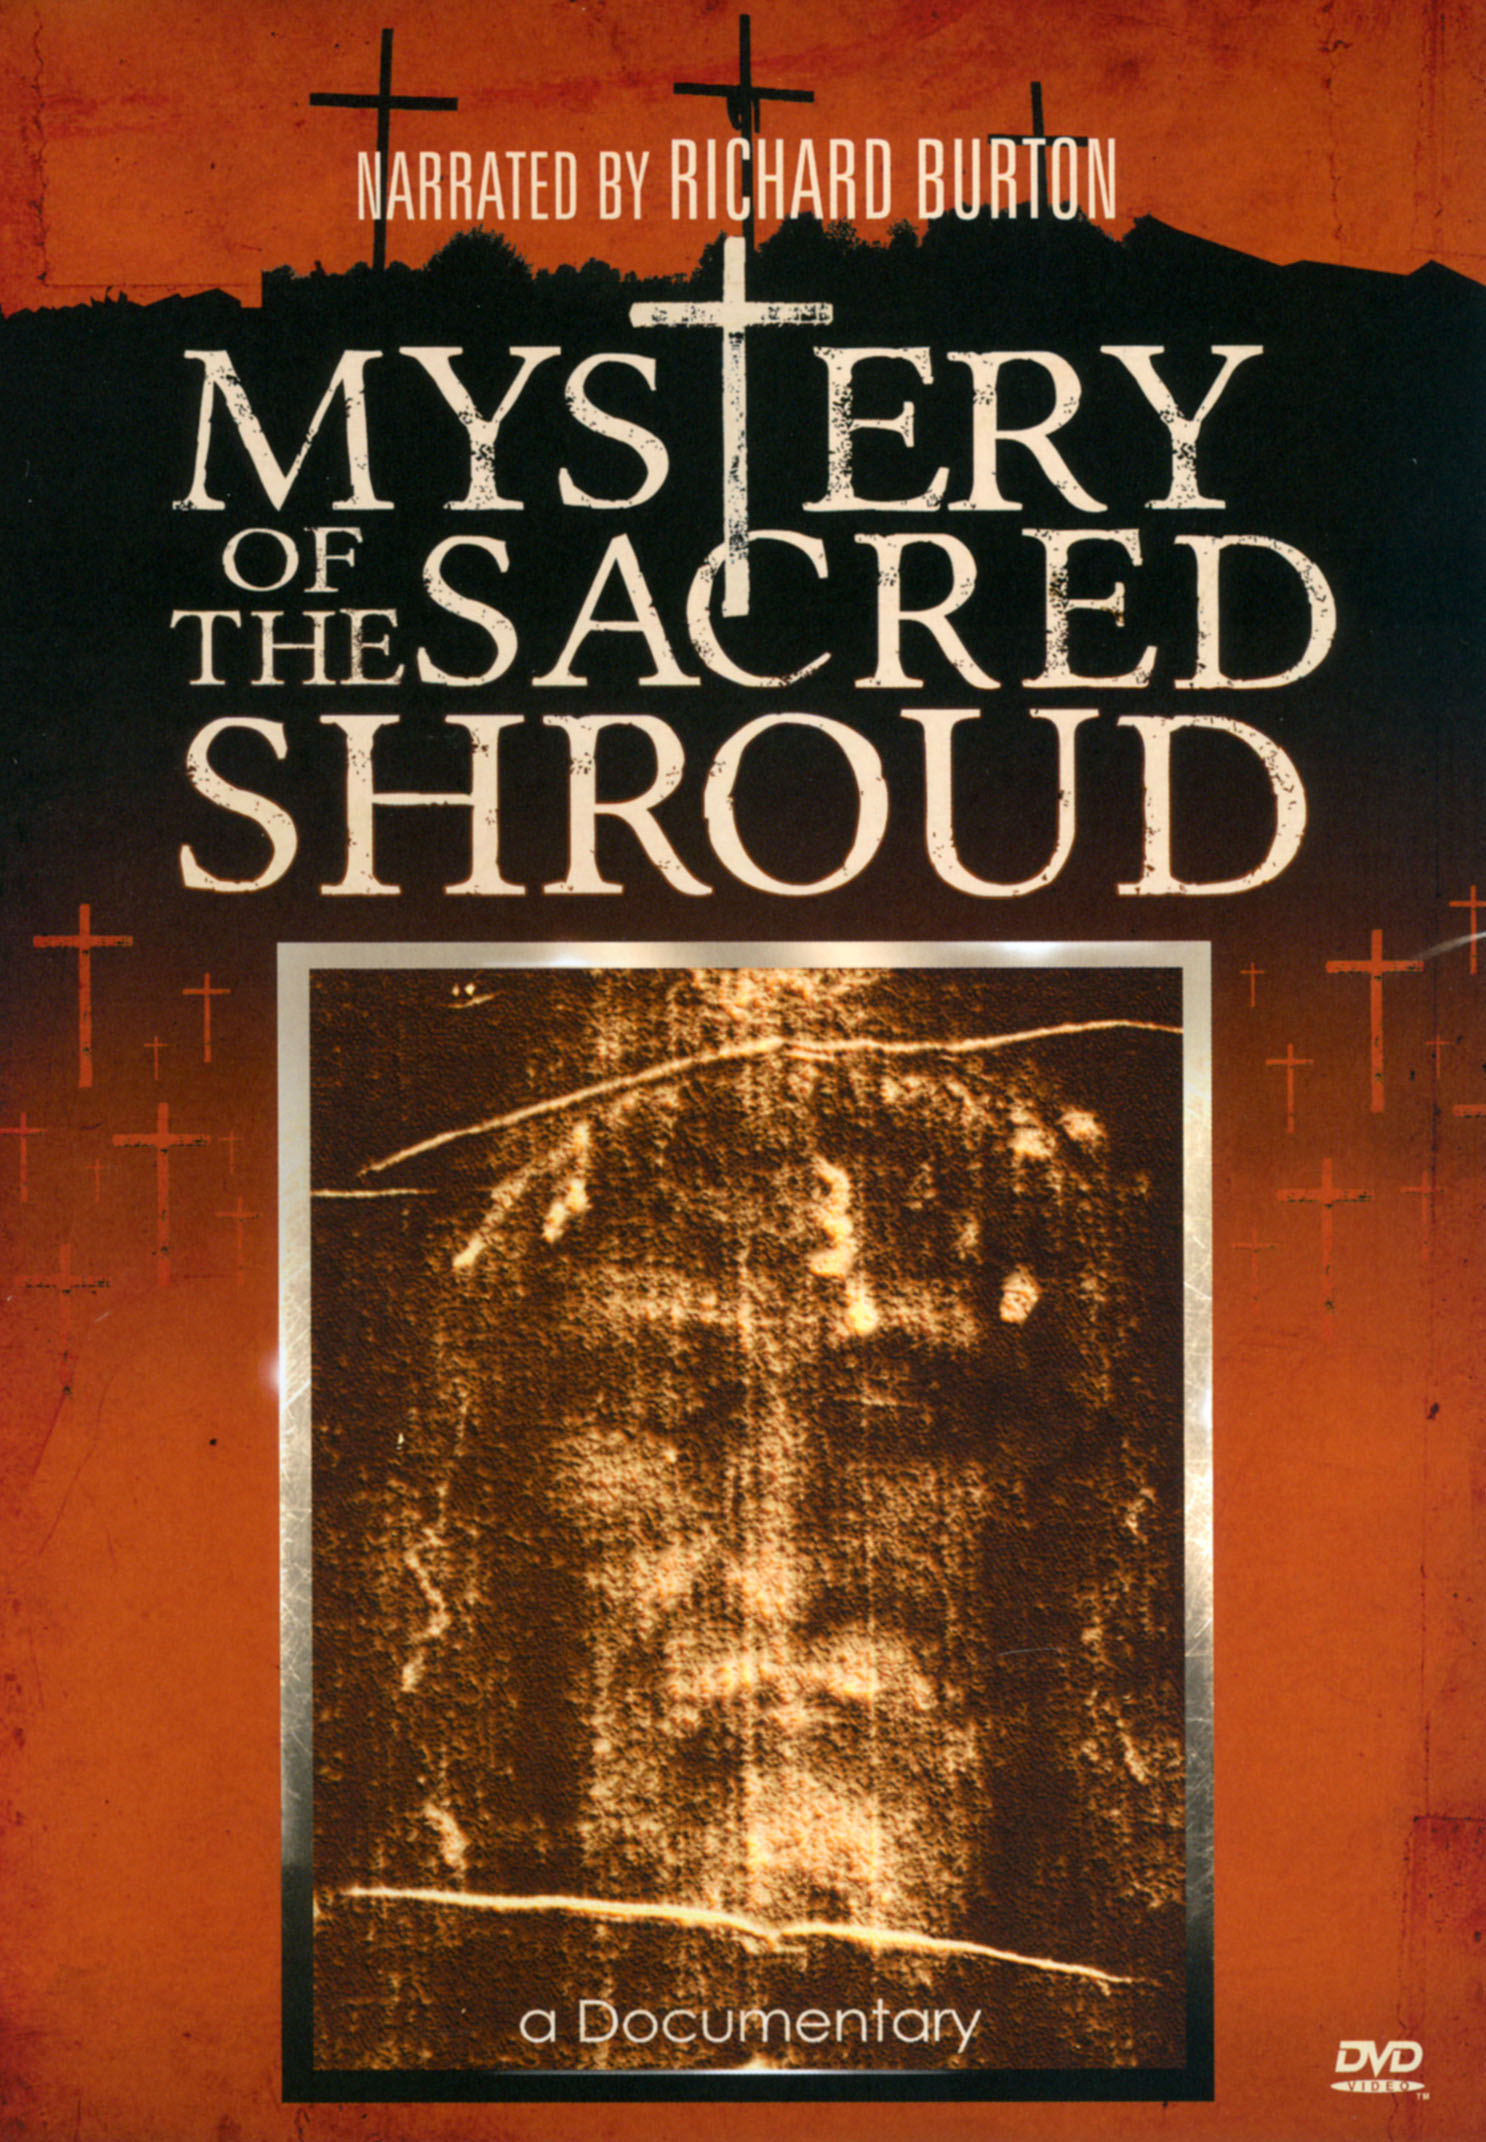 Mystery of the Sacred Shroud (1977)